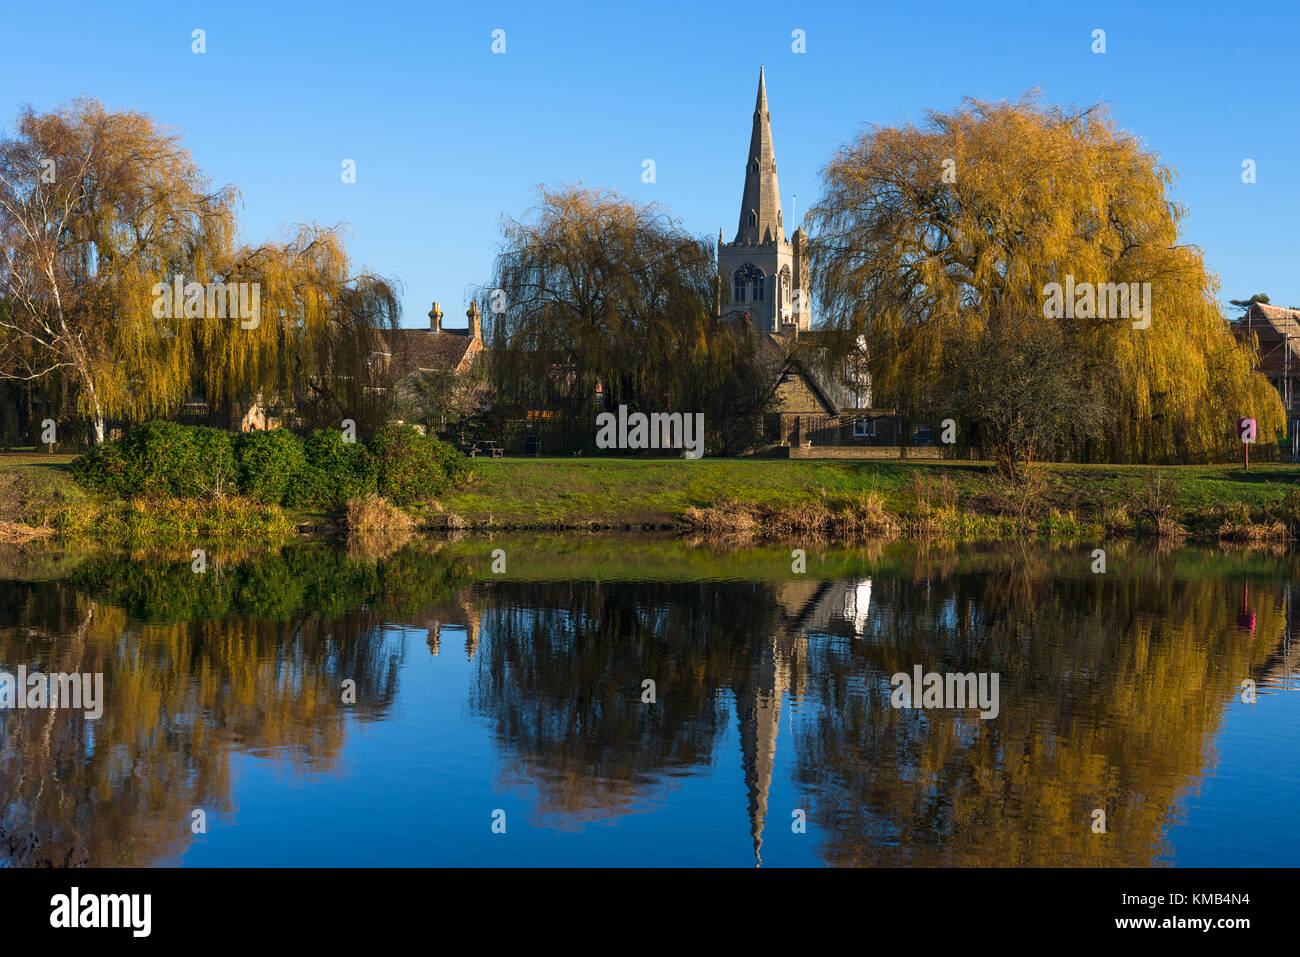 St. Mary the Virgin Church reflected in the lower pool off Great Ouse river, Godmanchester, Cambridgeshire, England, - Stock Image